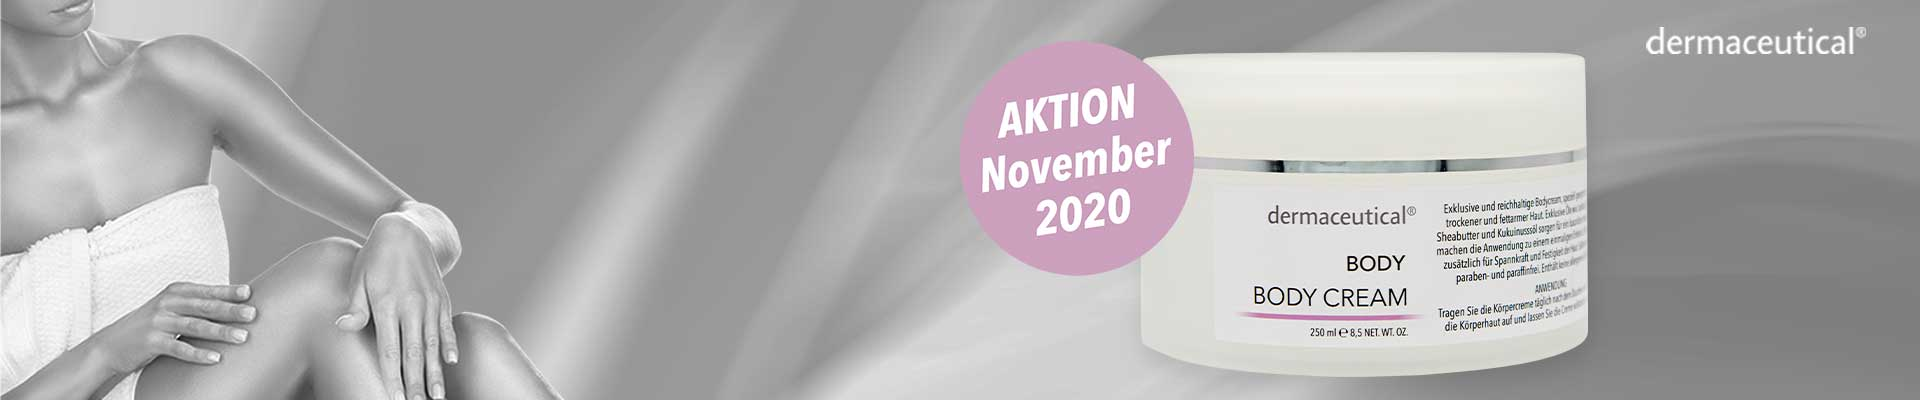 Monatsaktion-November-2020